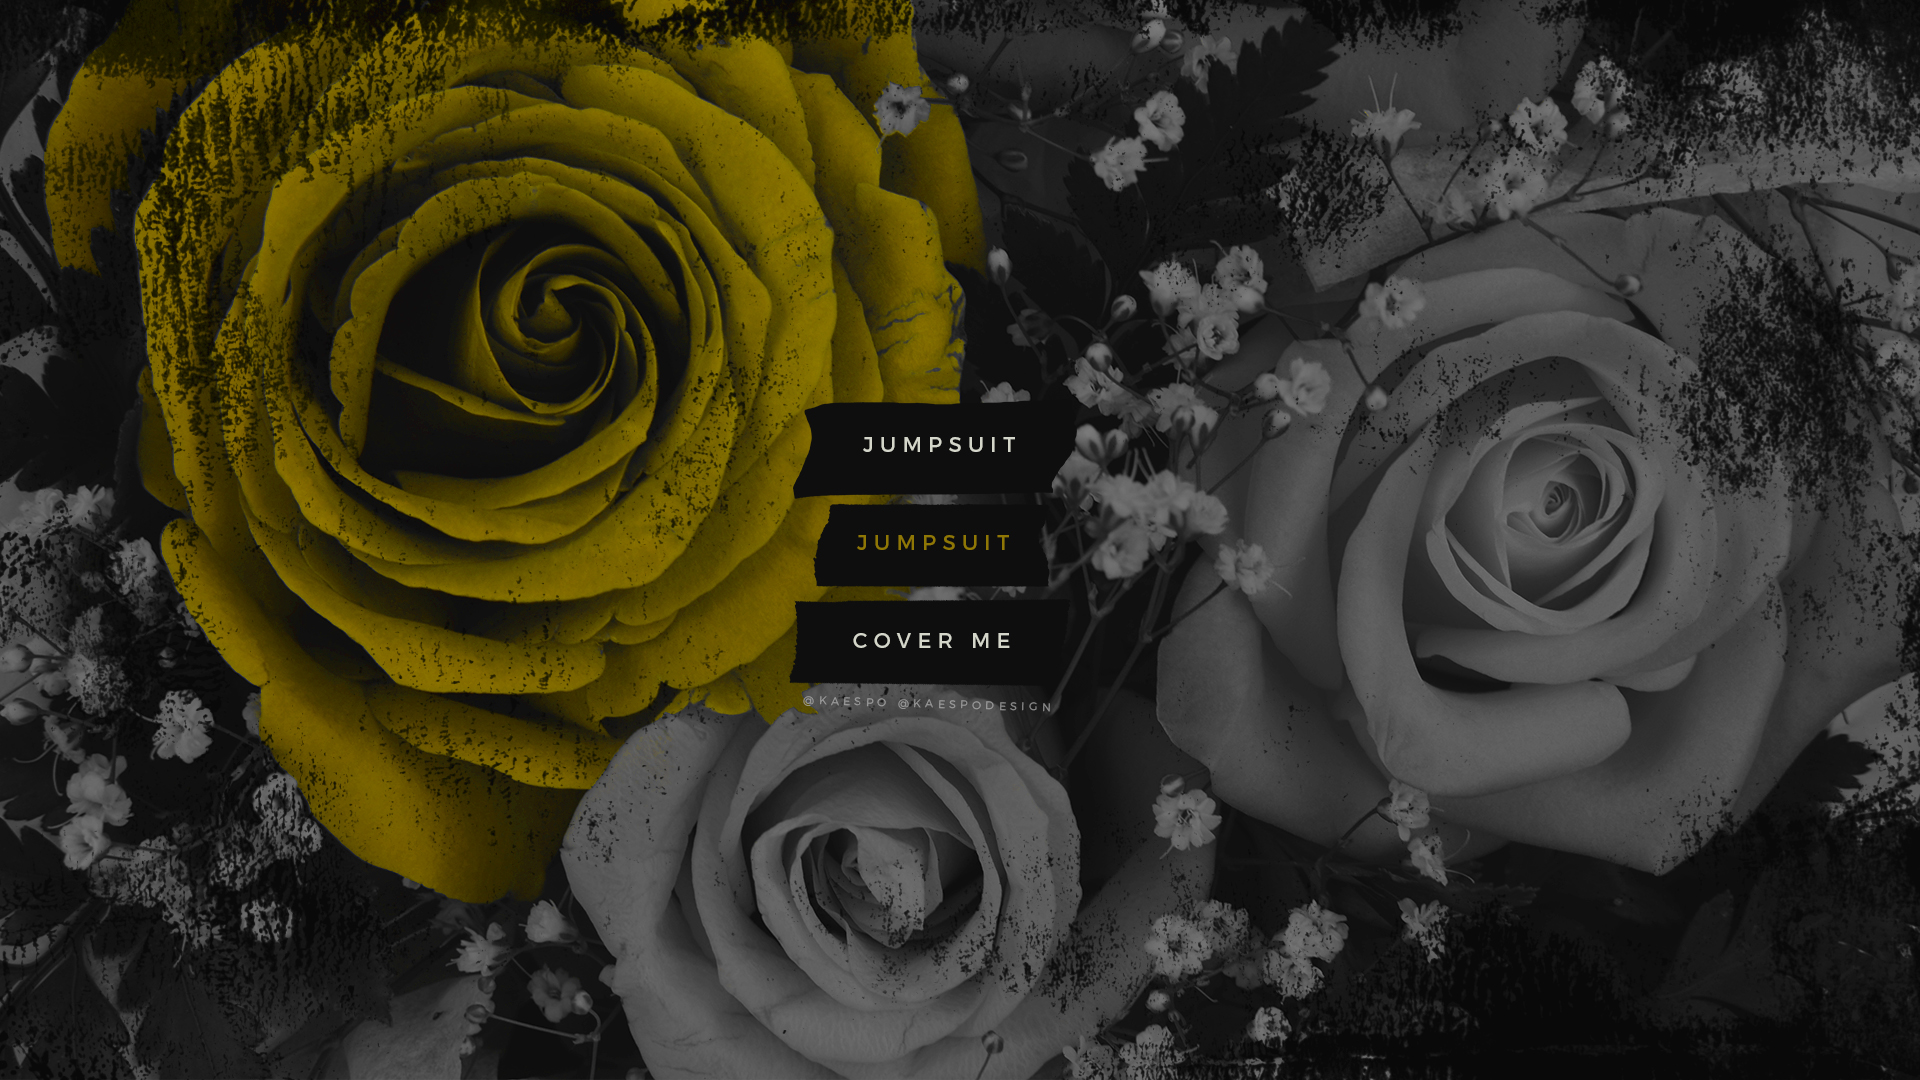 Trench Jumpsuit Lockscreen Floral Backgrounds | Design by KAESPO